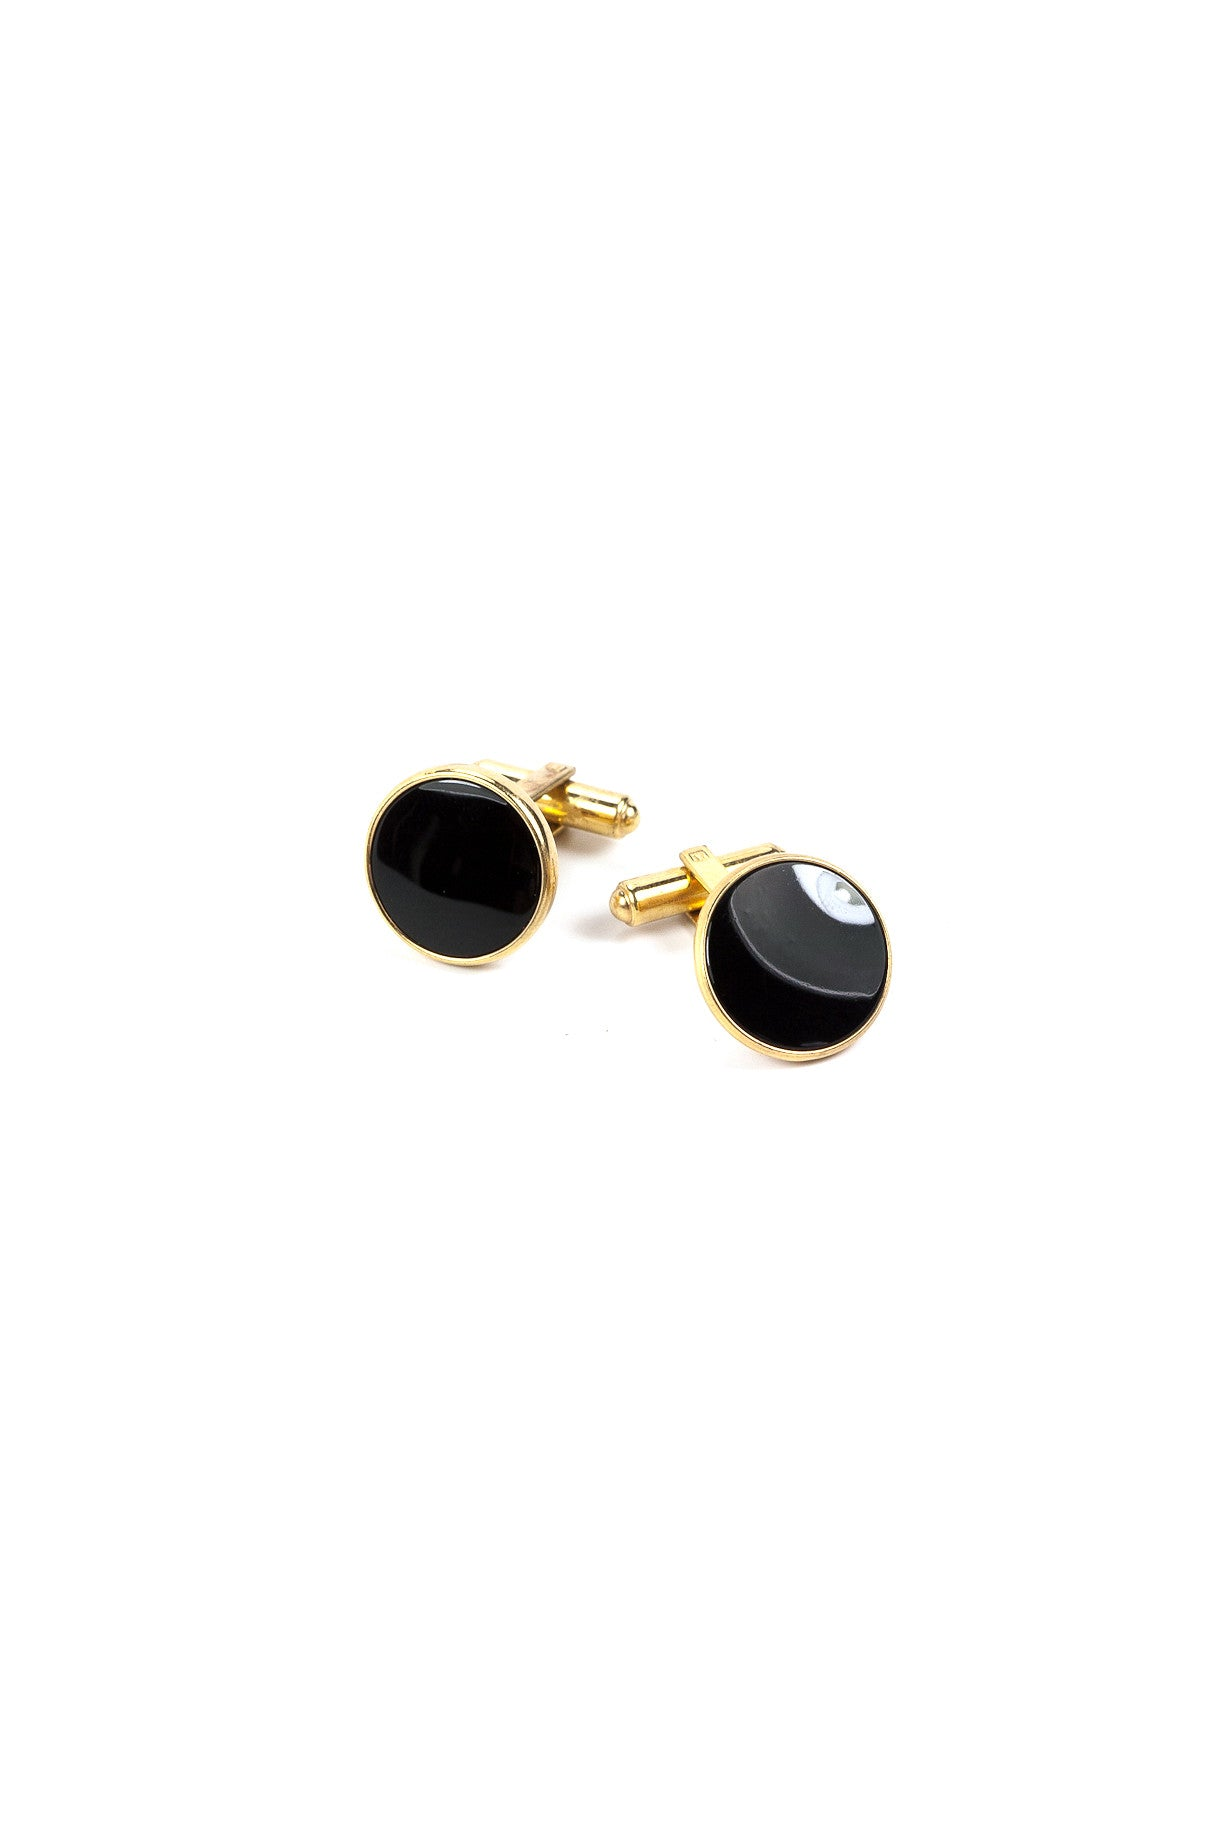 70's__Vintage__Onyx Cuff Links